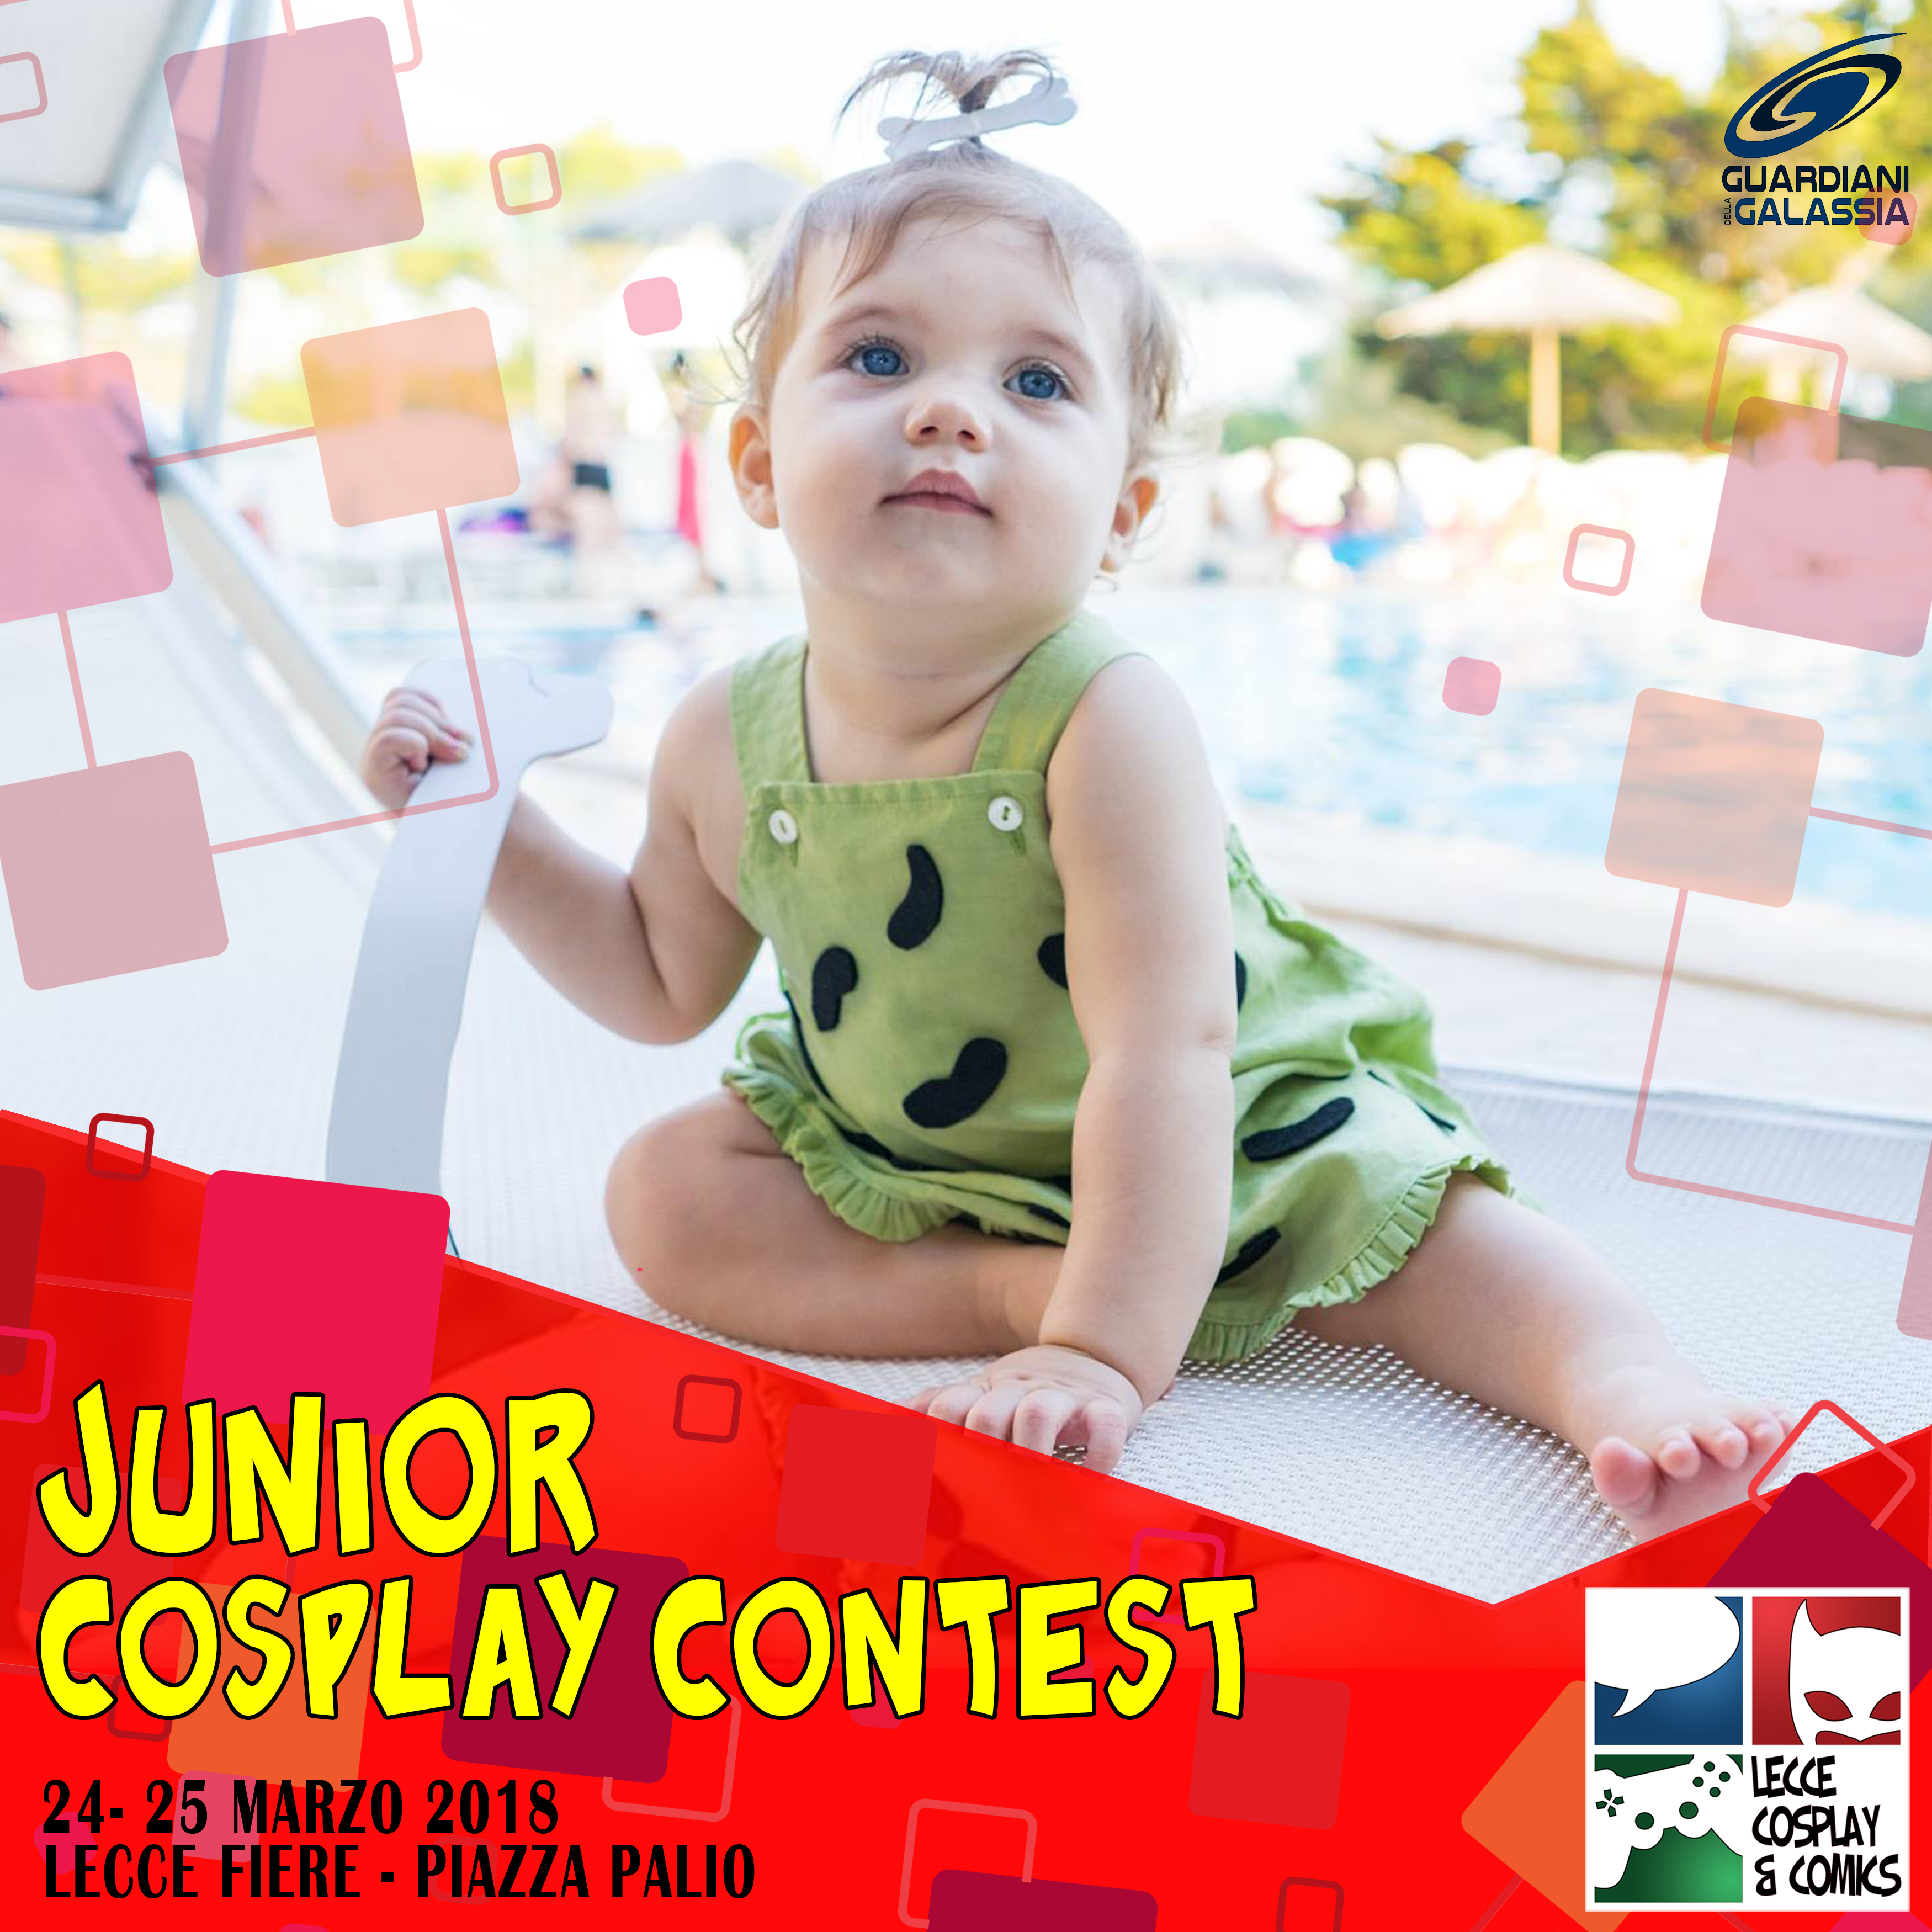 JUNIOR COSPLAY CONTEST